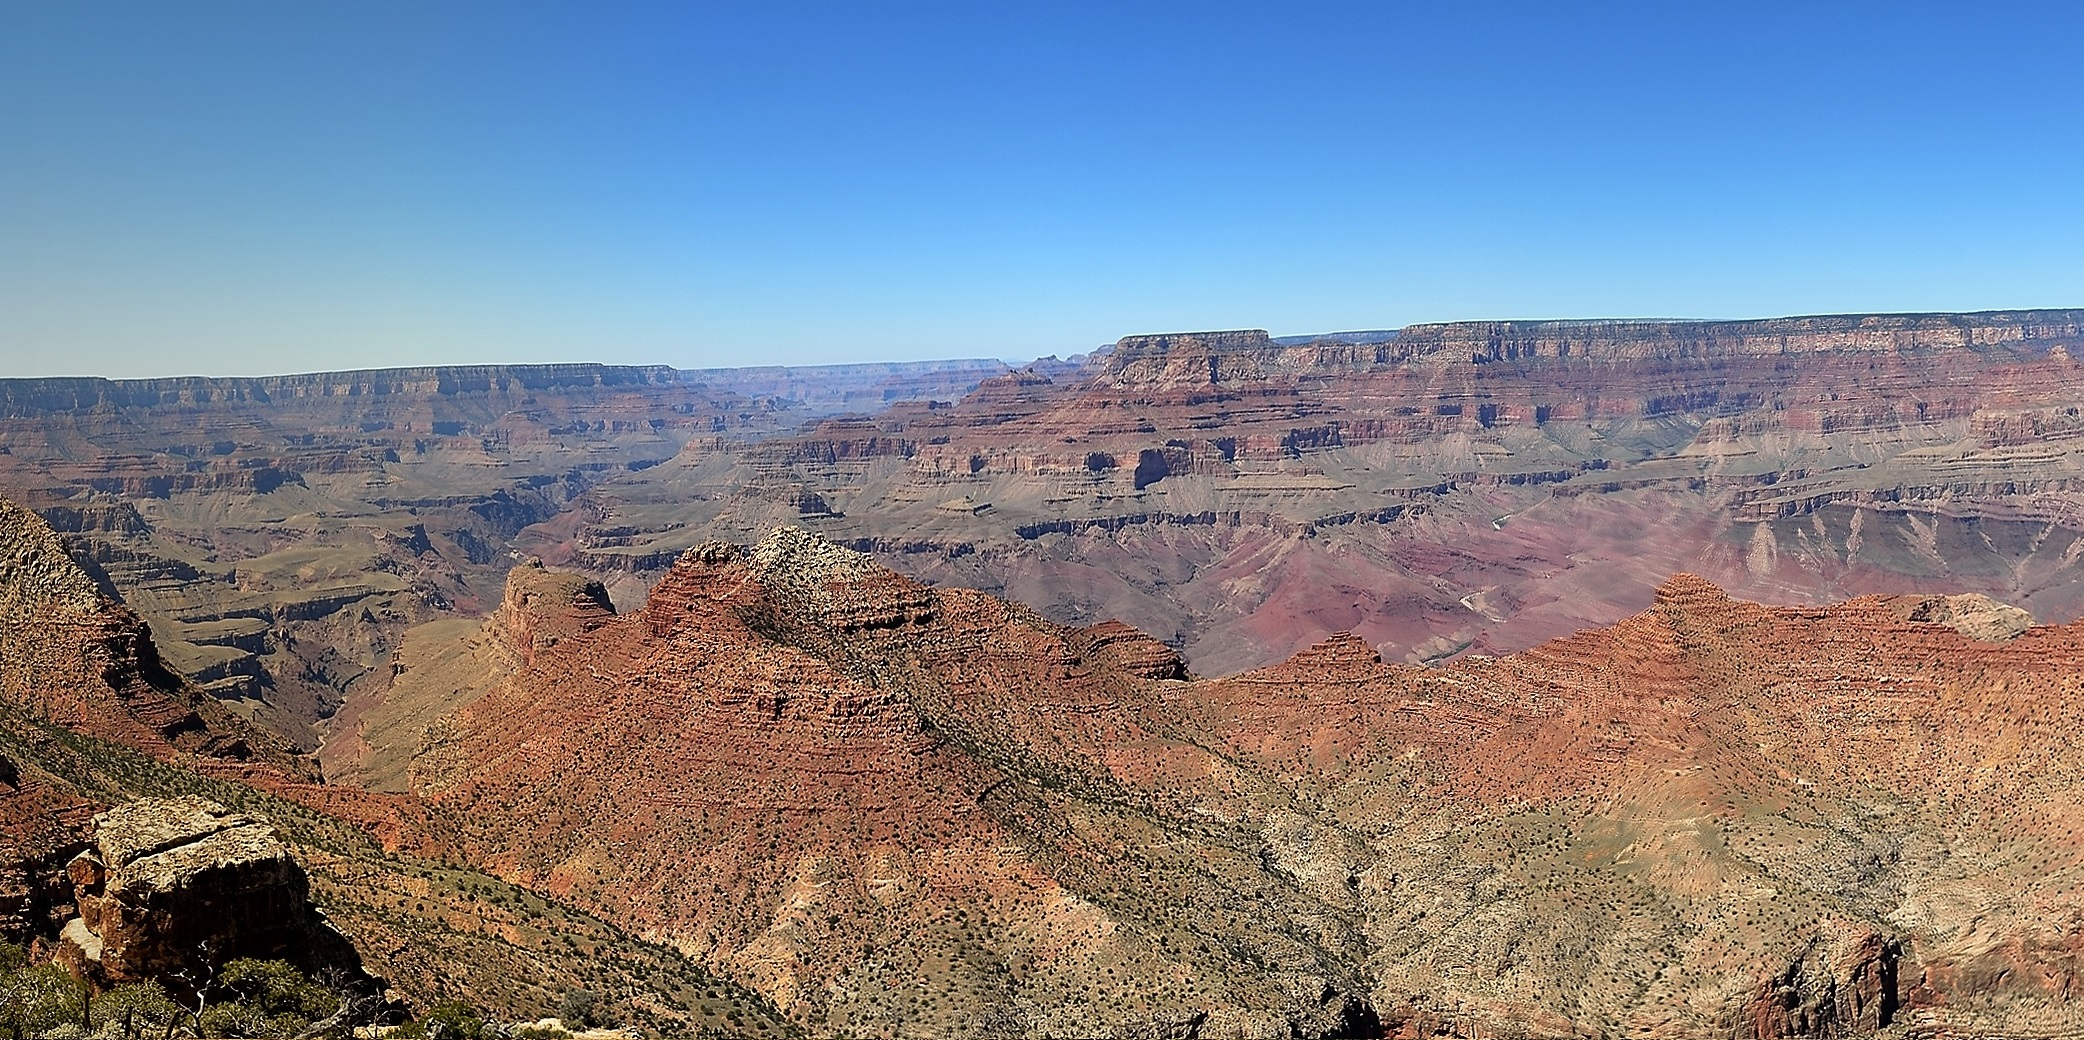 Who else wants to find the best viewpoint of the Grand Canyon?